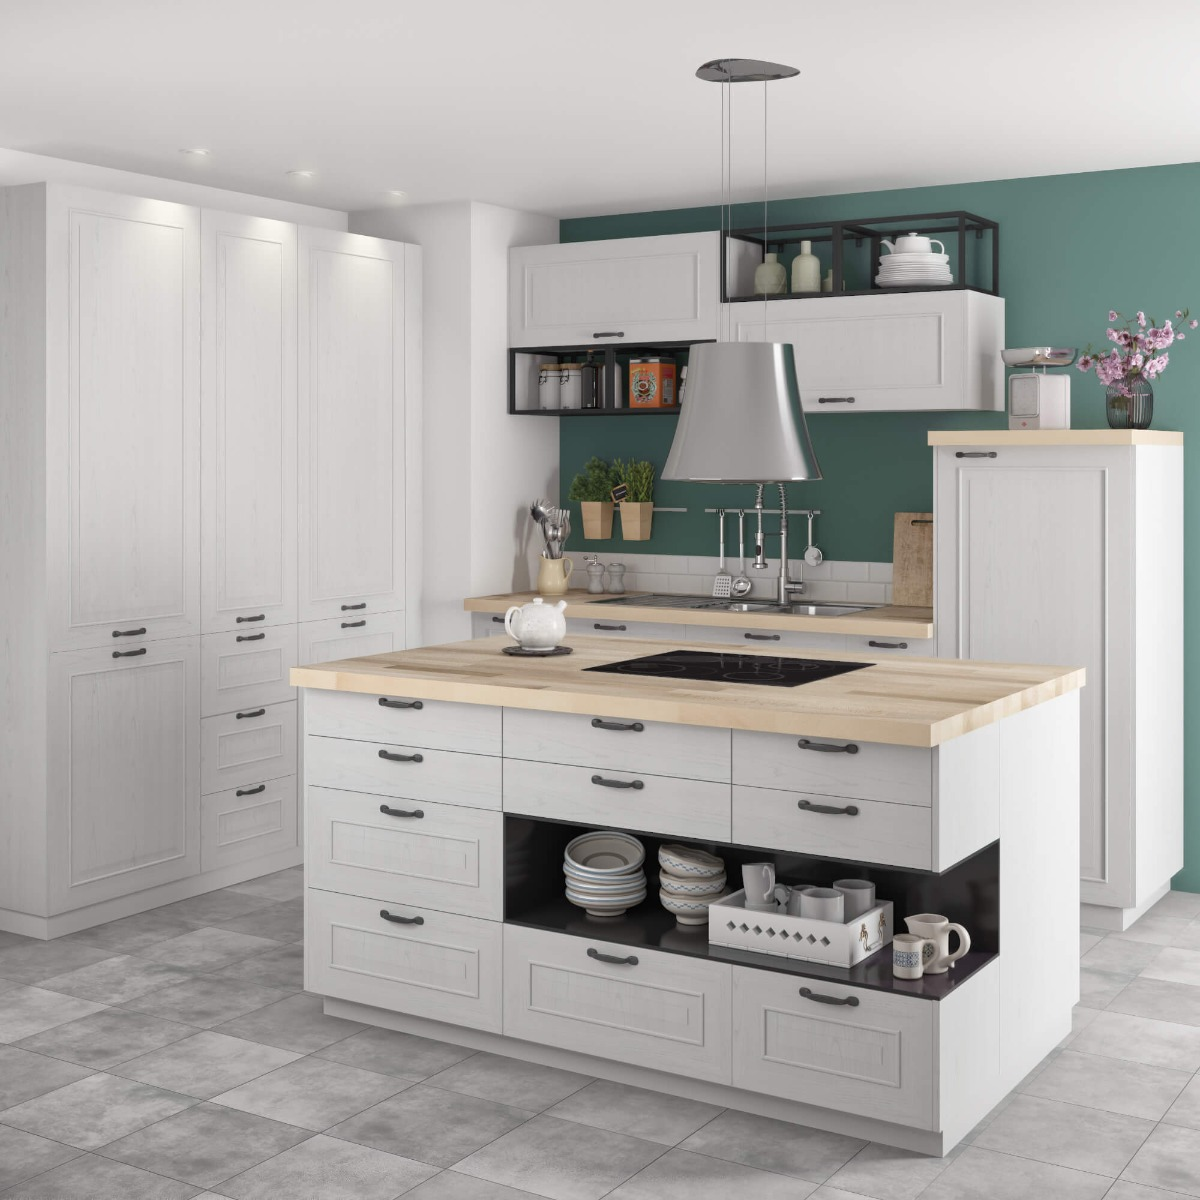 Delinia Moscow Designer Kitchen By Leroy Merlin Leroy Merlin South Africa